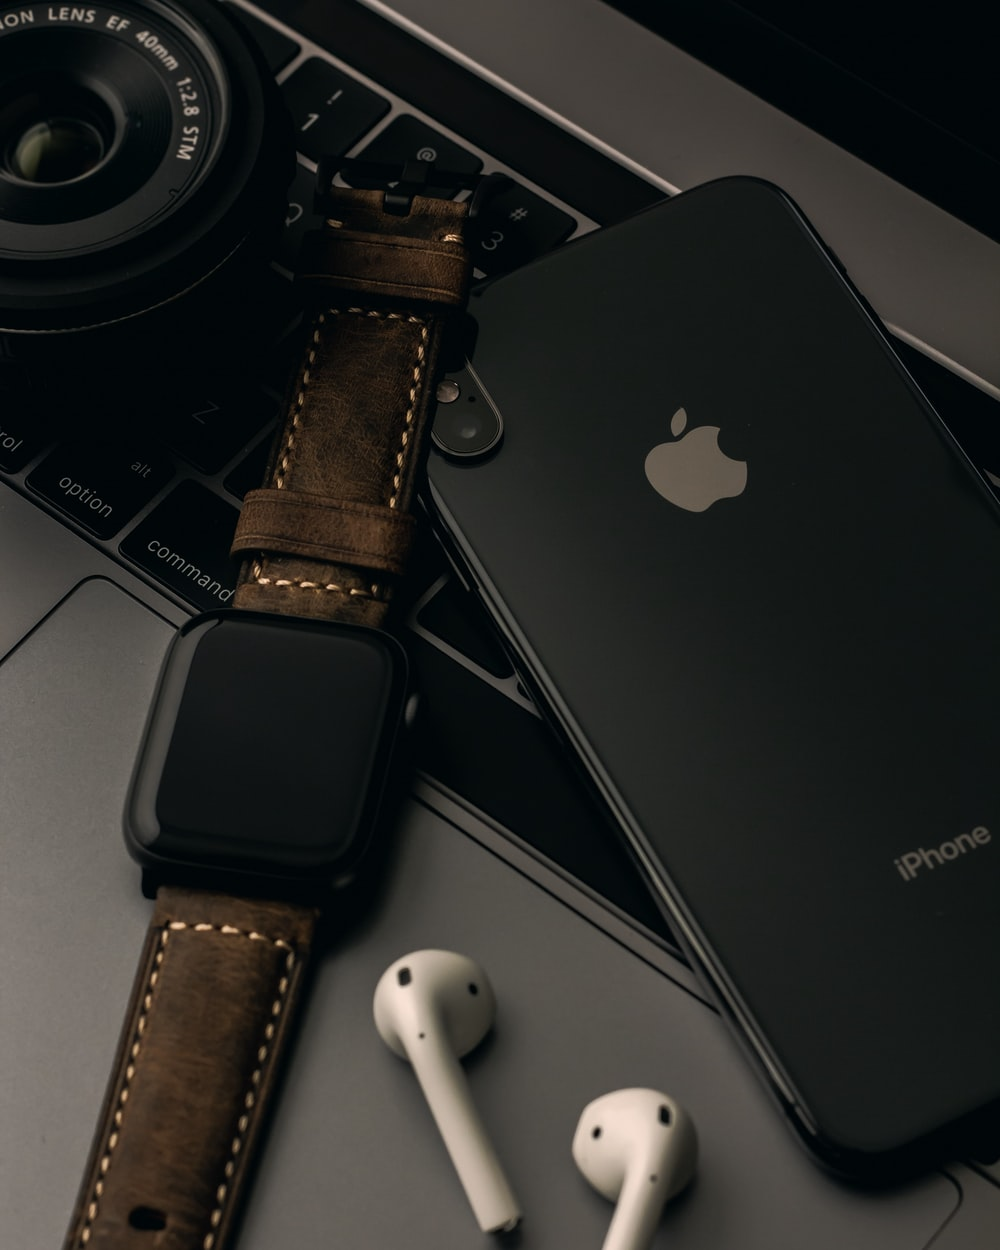 iPhone X beside Apple Watch and AirPods